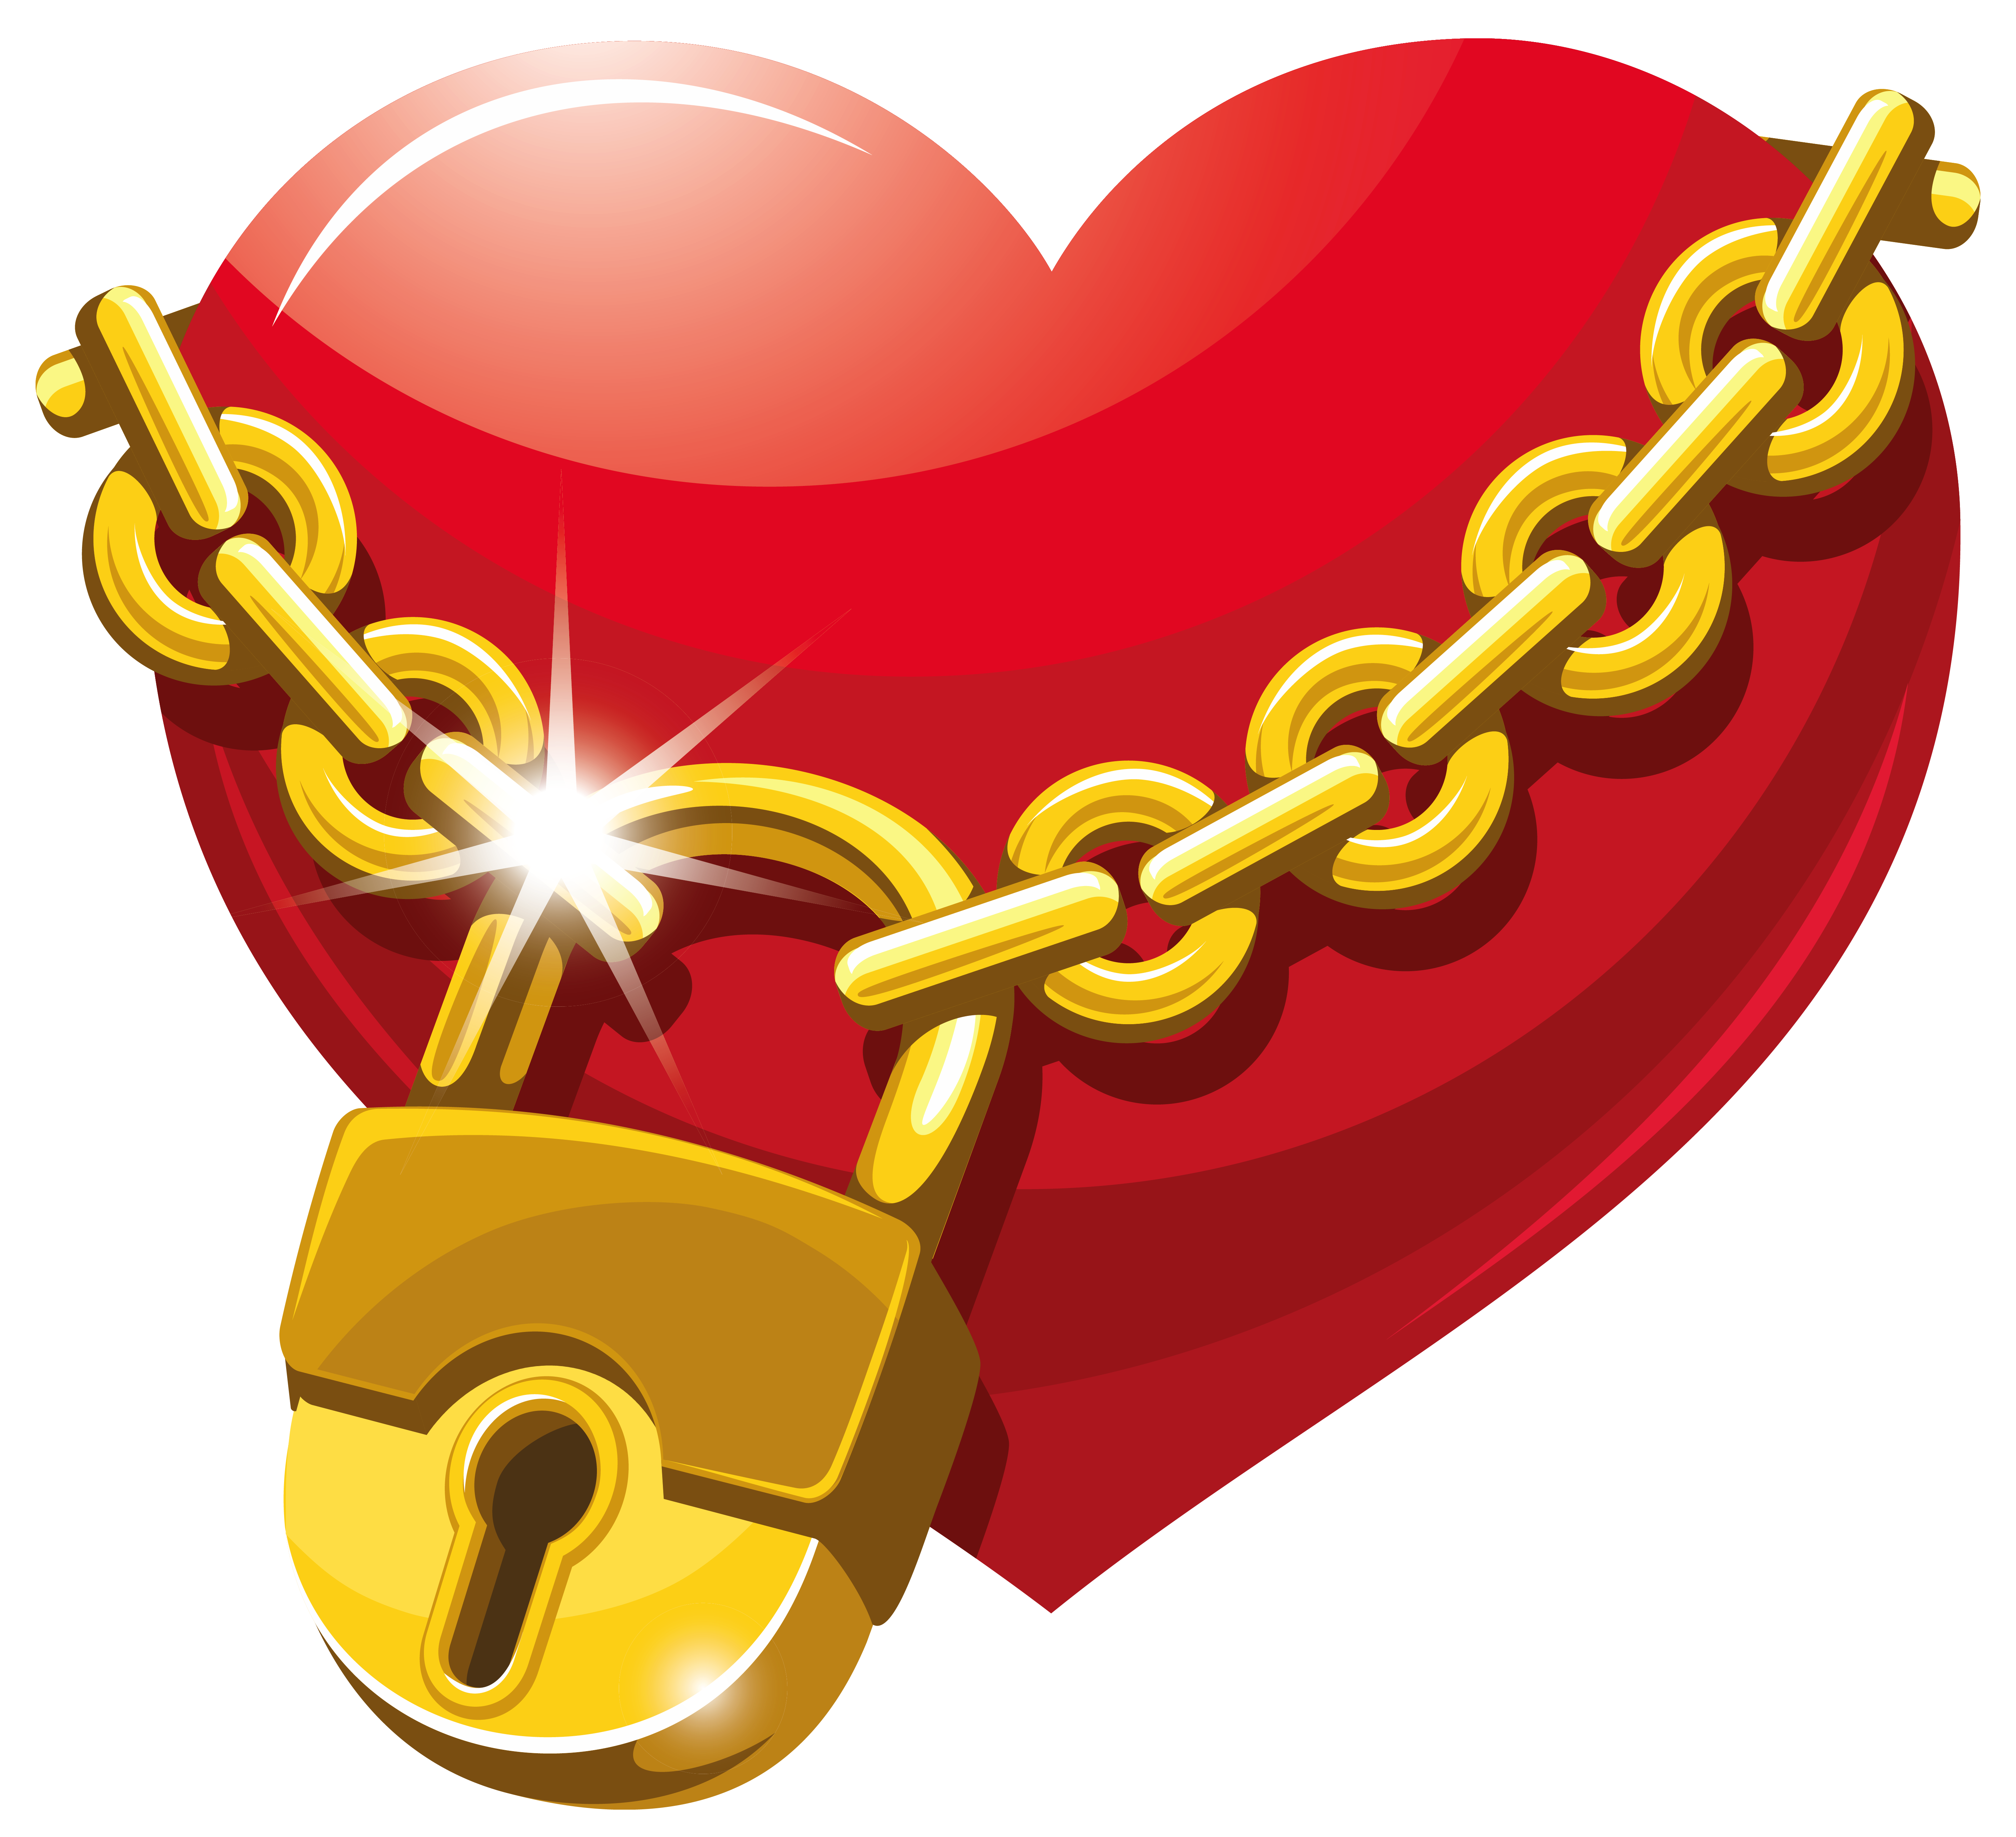 Heart world clipart vector royalty free download Locked Heart PNG Clipart | Gallery Yopriceville - High-Quality ... vector royalty free download